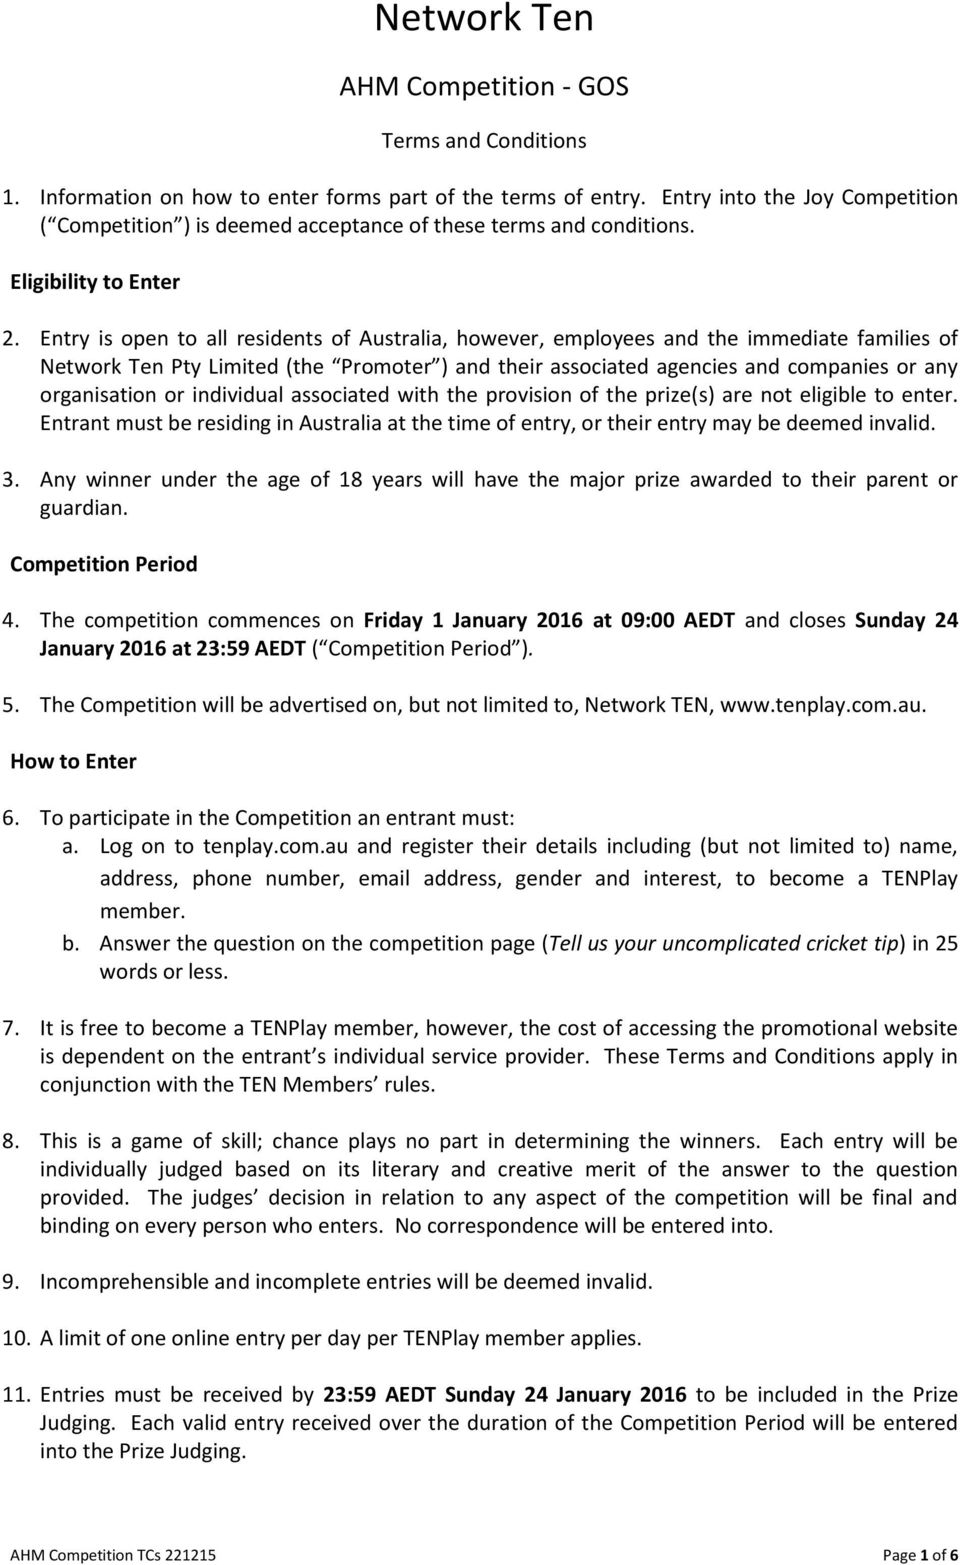 Network Ten  AHM Competition - GOS  Terms and Conditions - PDF